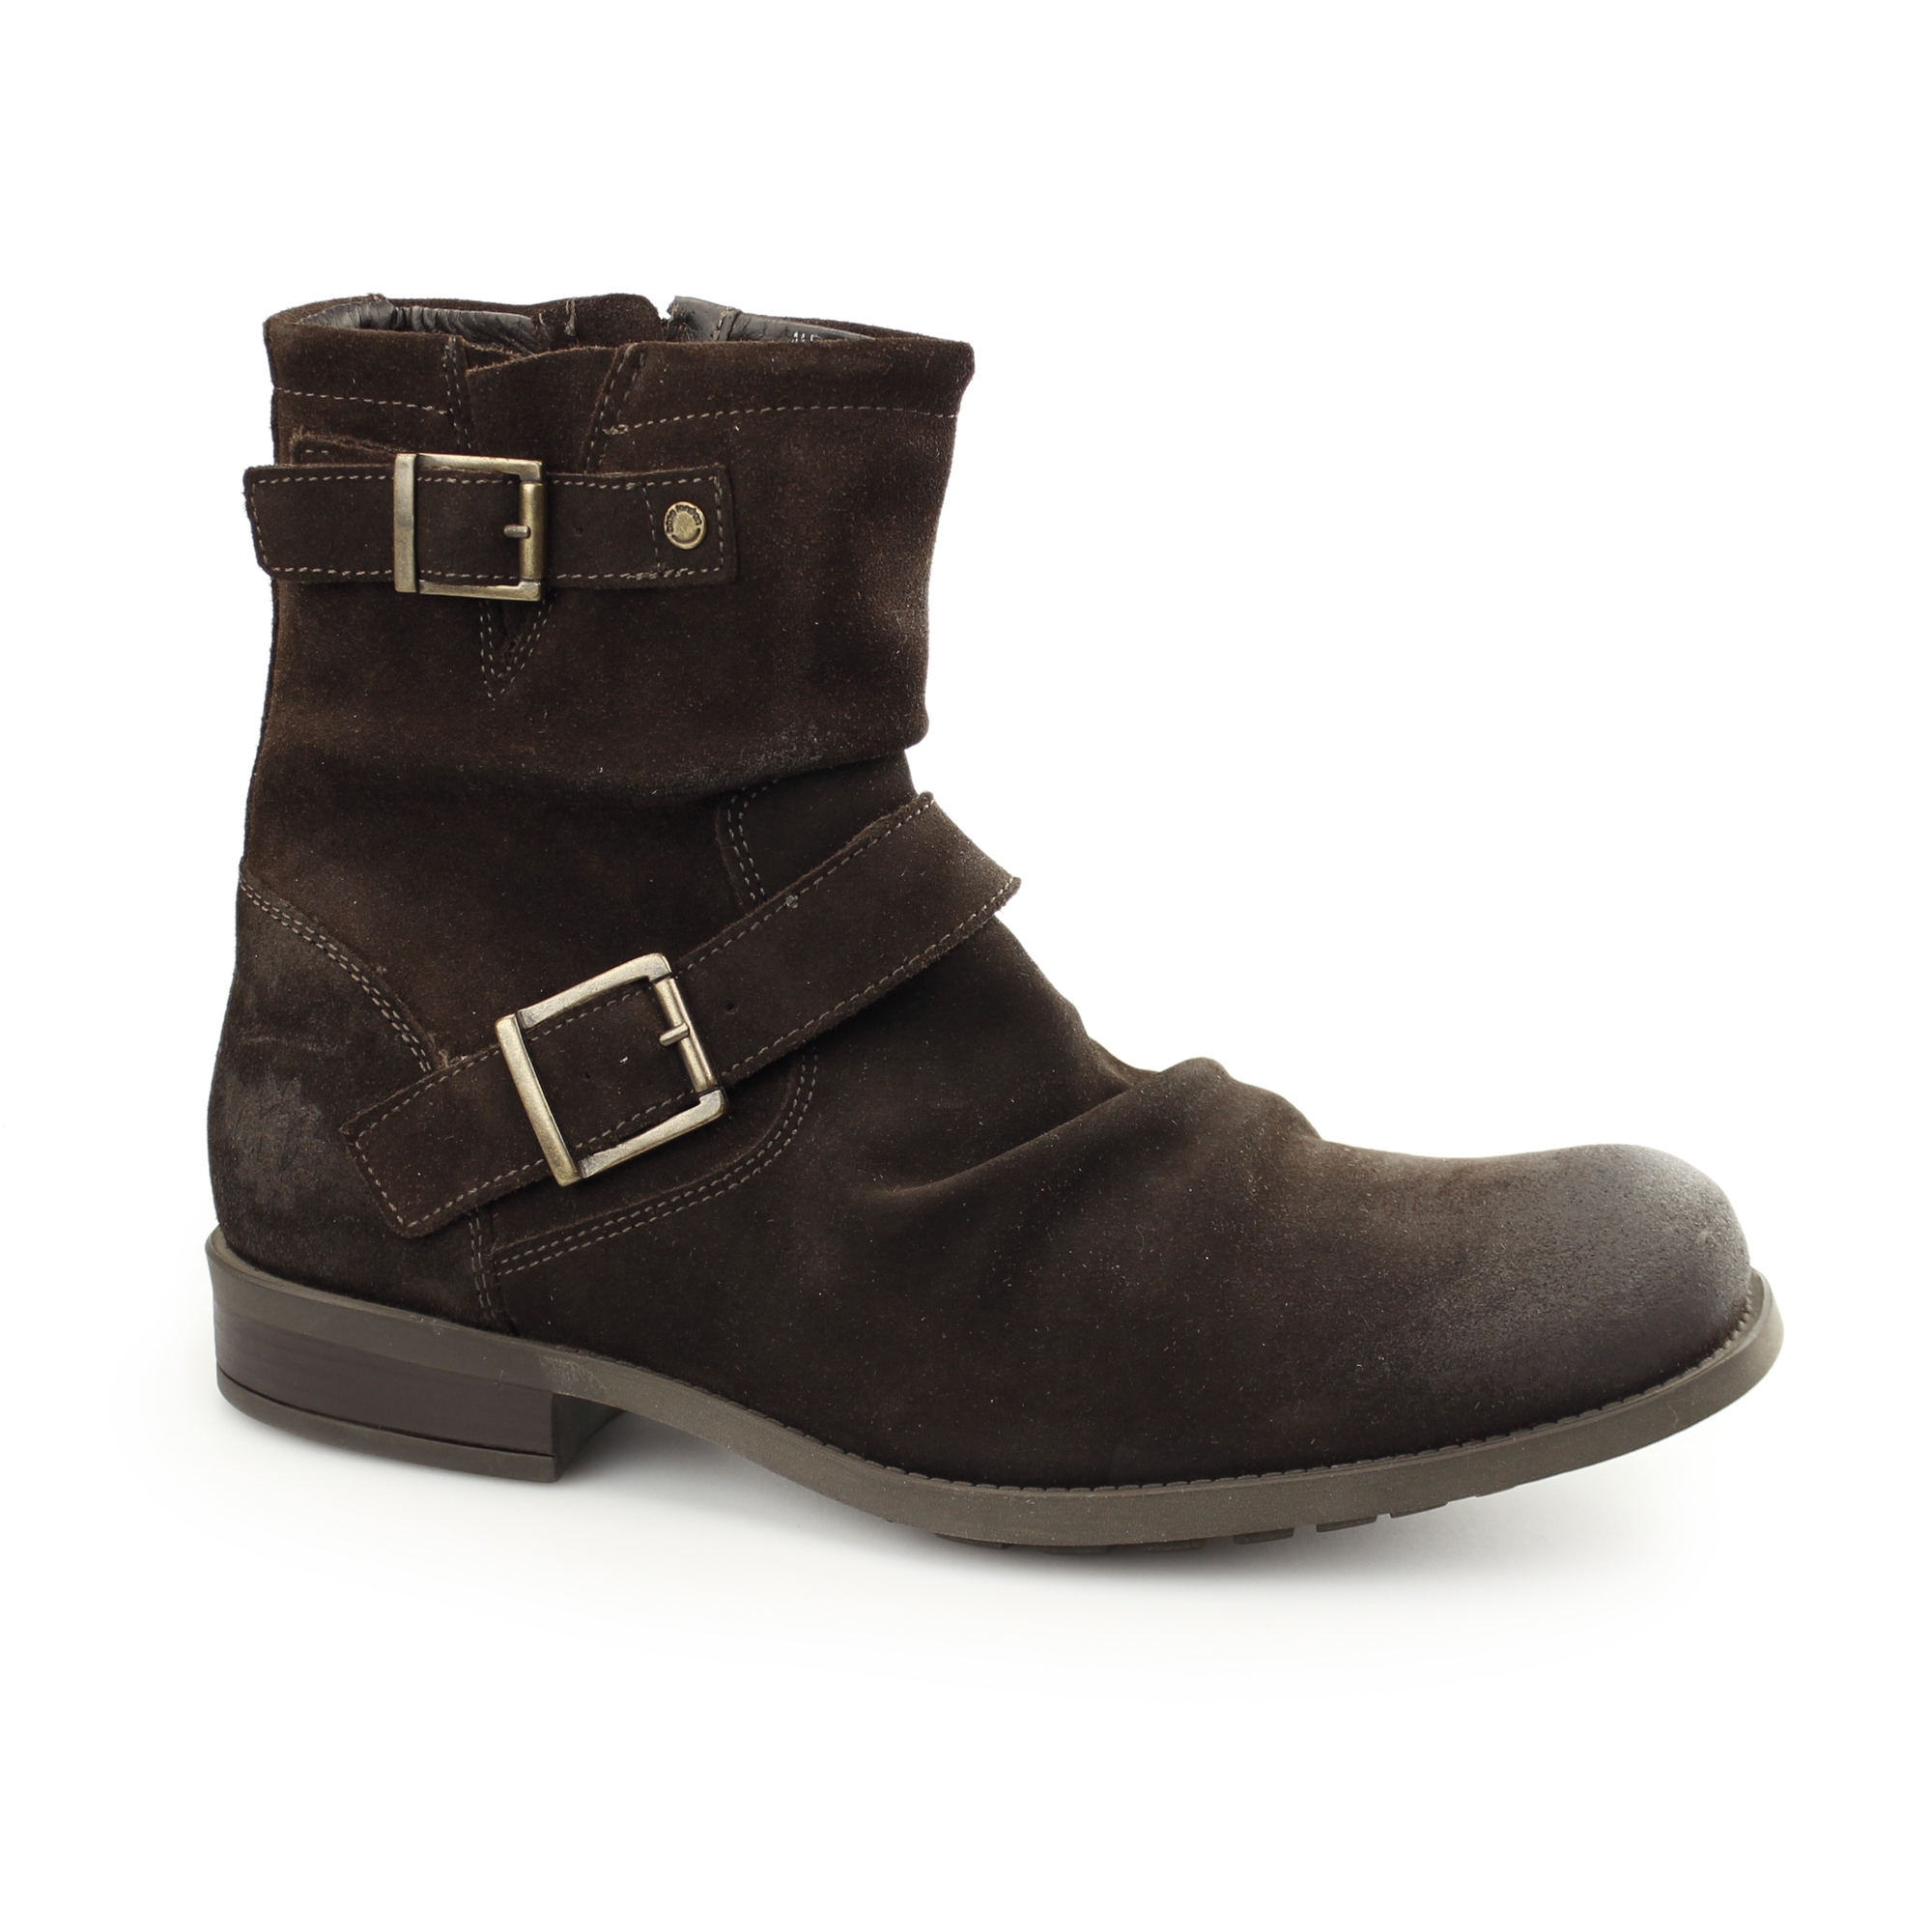 base metal rustic mens greasy suede leather casual